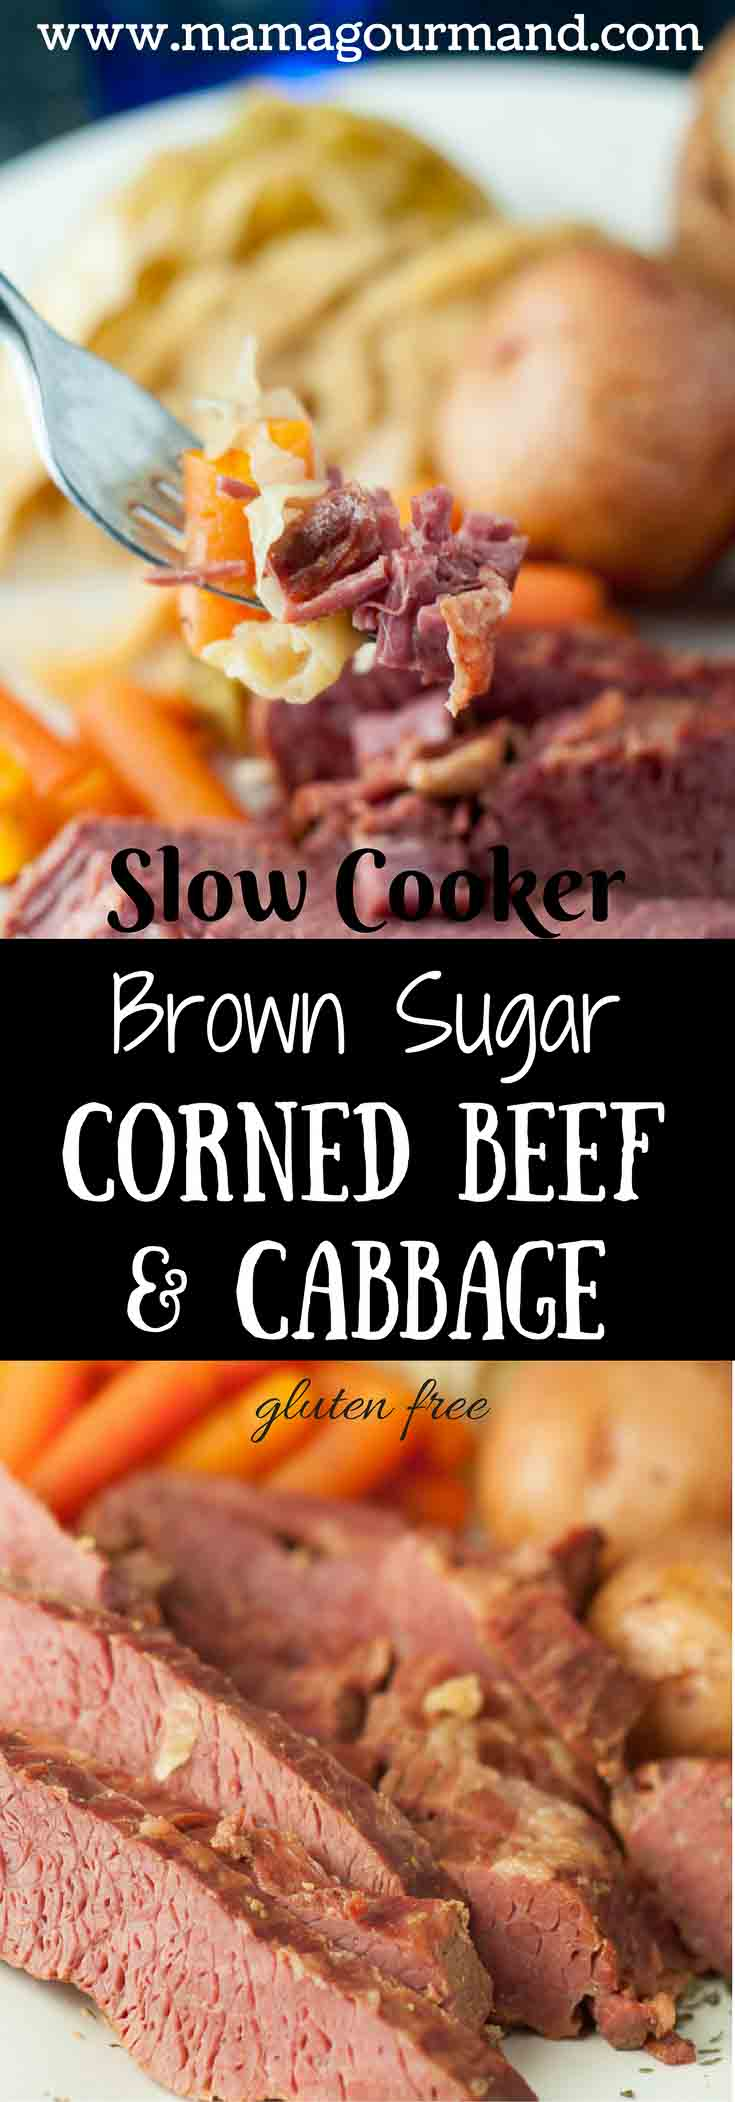 This Slow Cooker Apple and Brown Sugar Corned Beef and Cabbage recipe will be the best version you have ever tasted! Double the recipe because it's that good. http://www.mamagourmand.com